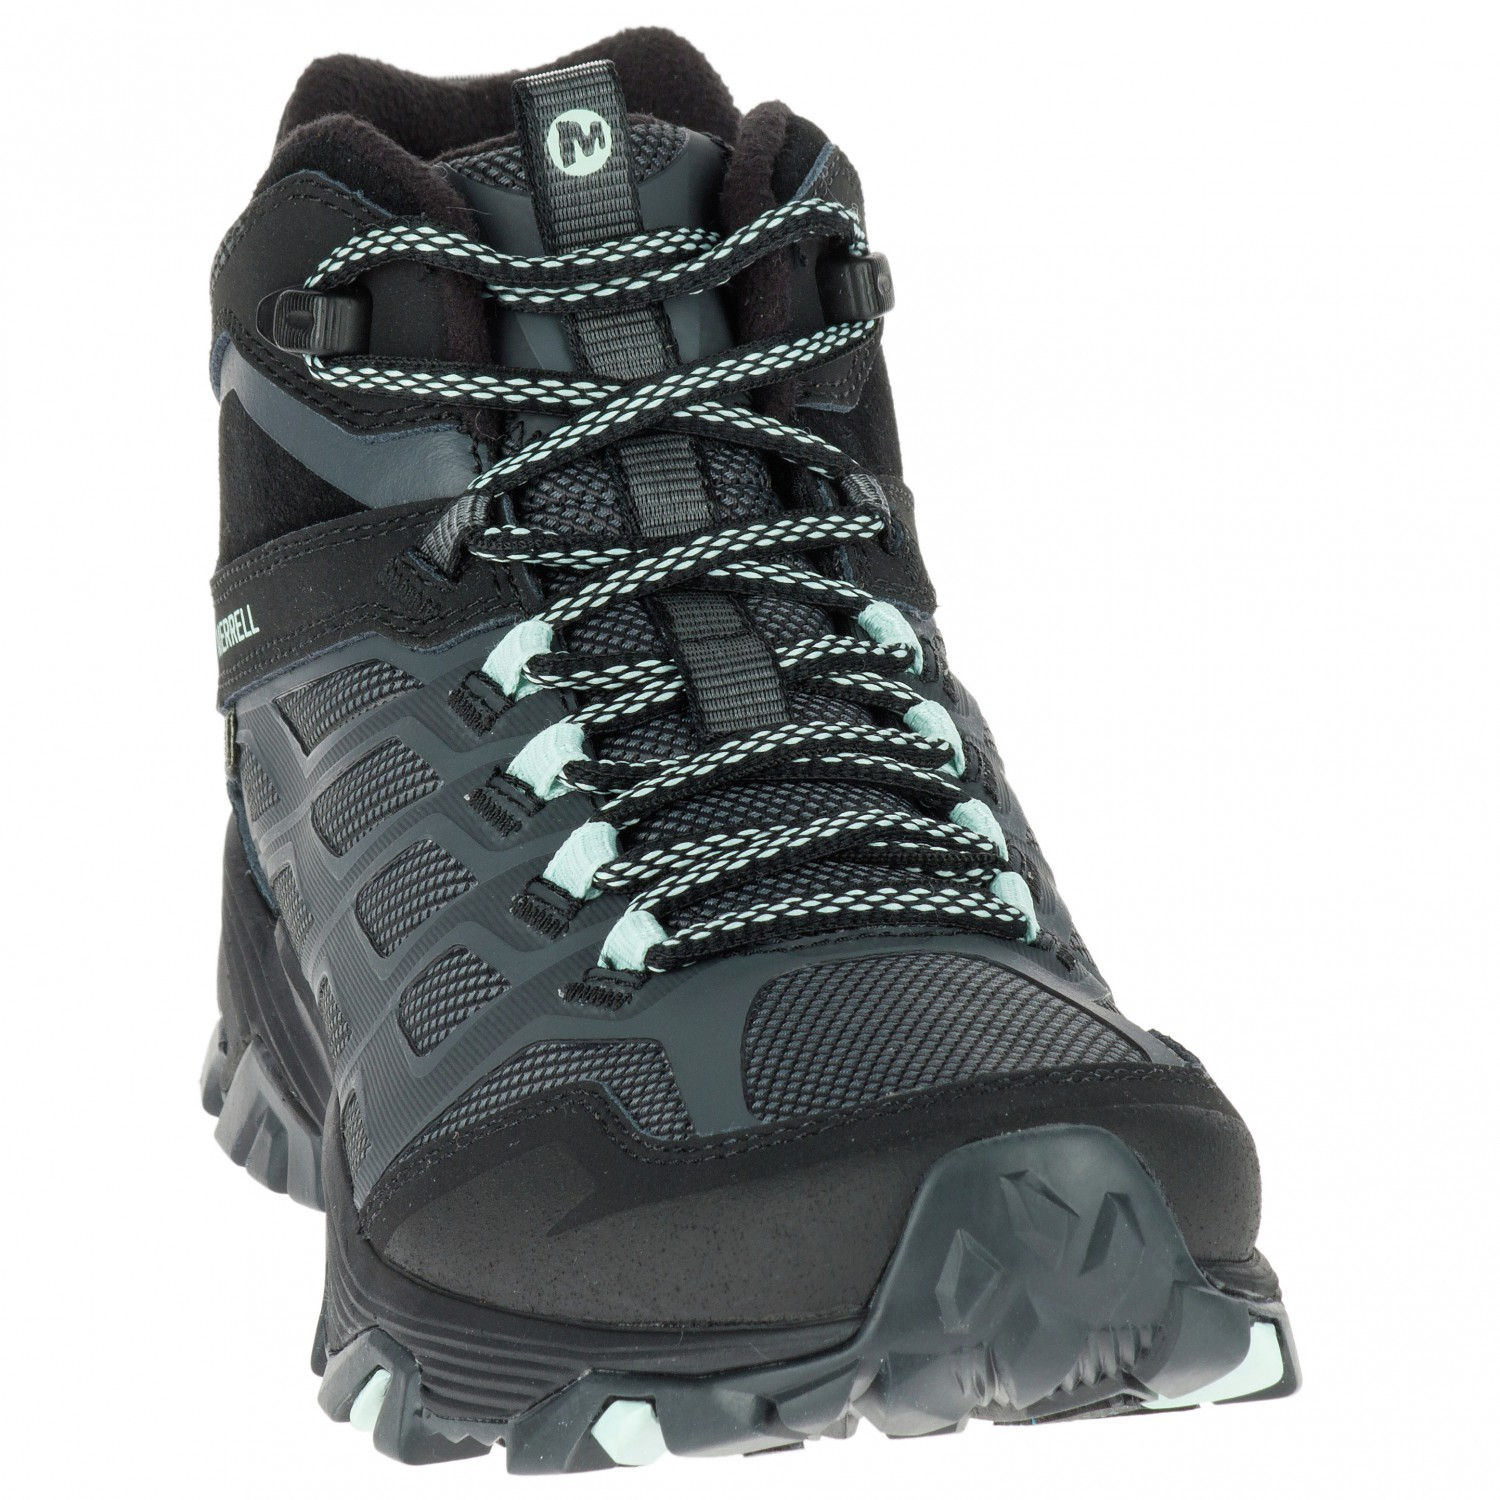 2127dd24ea7 Merrell Moab FST Ice+ Thermo - Winter Boots Women's | Buy online ...